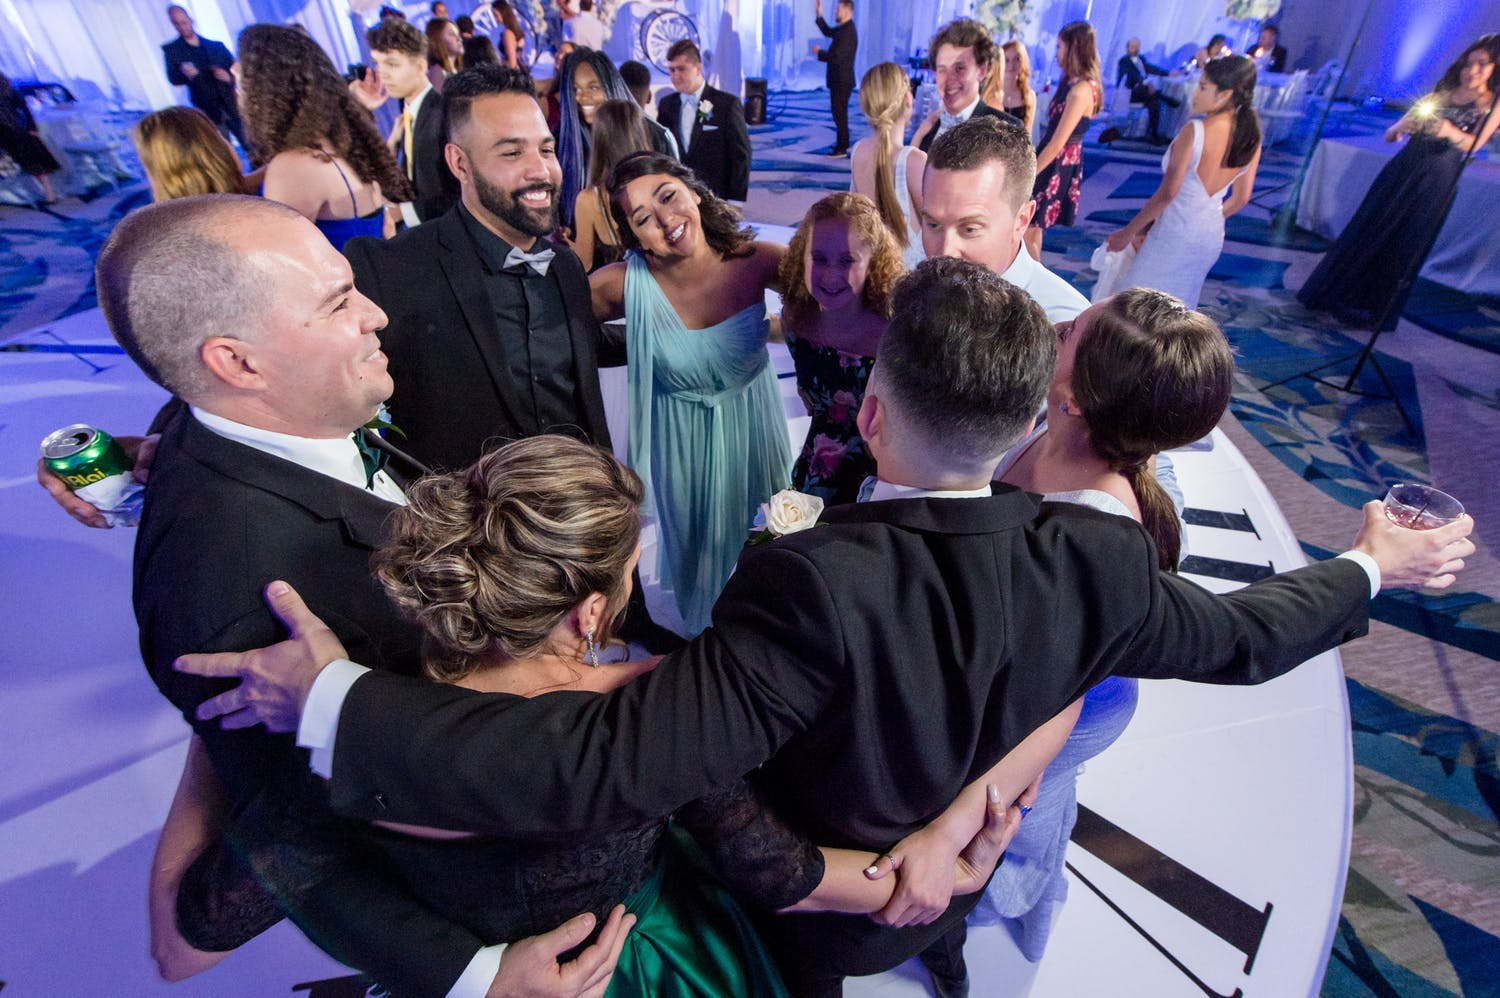 Friends and family hug on dance floor at quinceañera | PartySlate